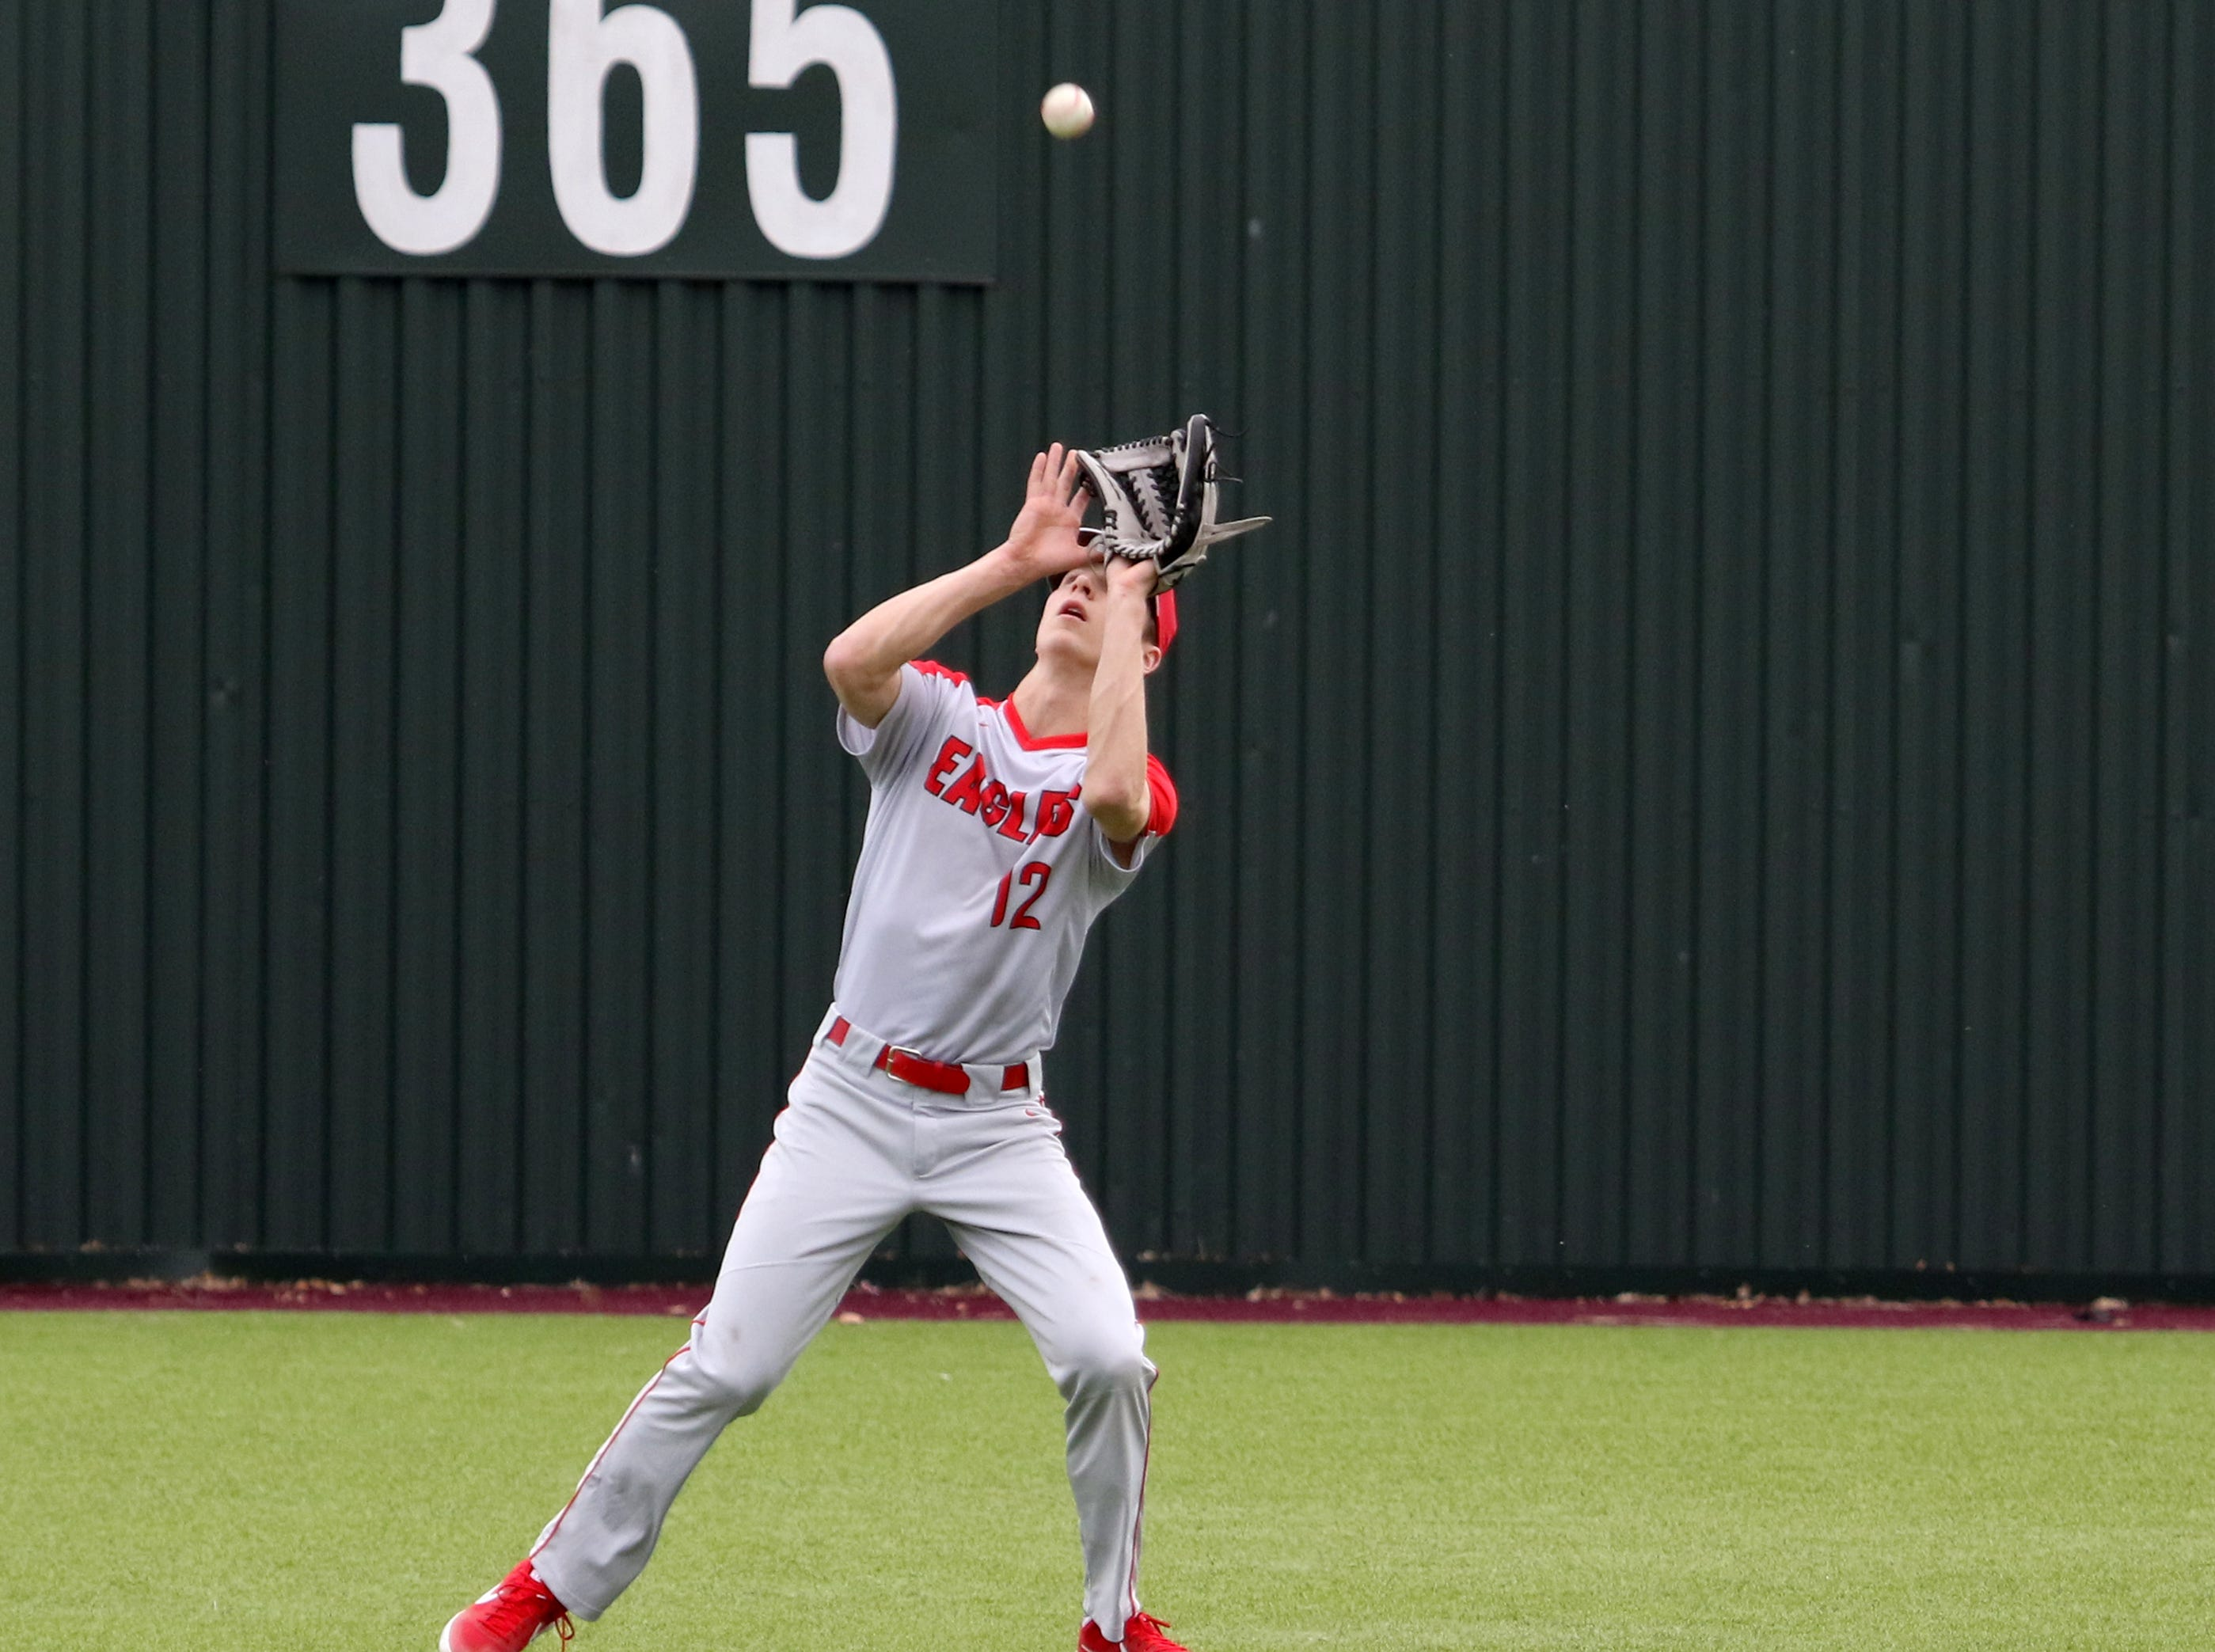 Holliday's Connor Cox catches the flyball in the game against Wichita Falls High School Friday, March 8, 2019, in Bowie for the Walker Stallcup Tournament.